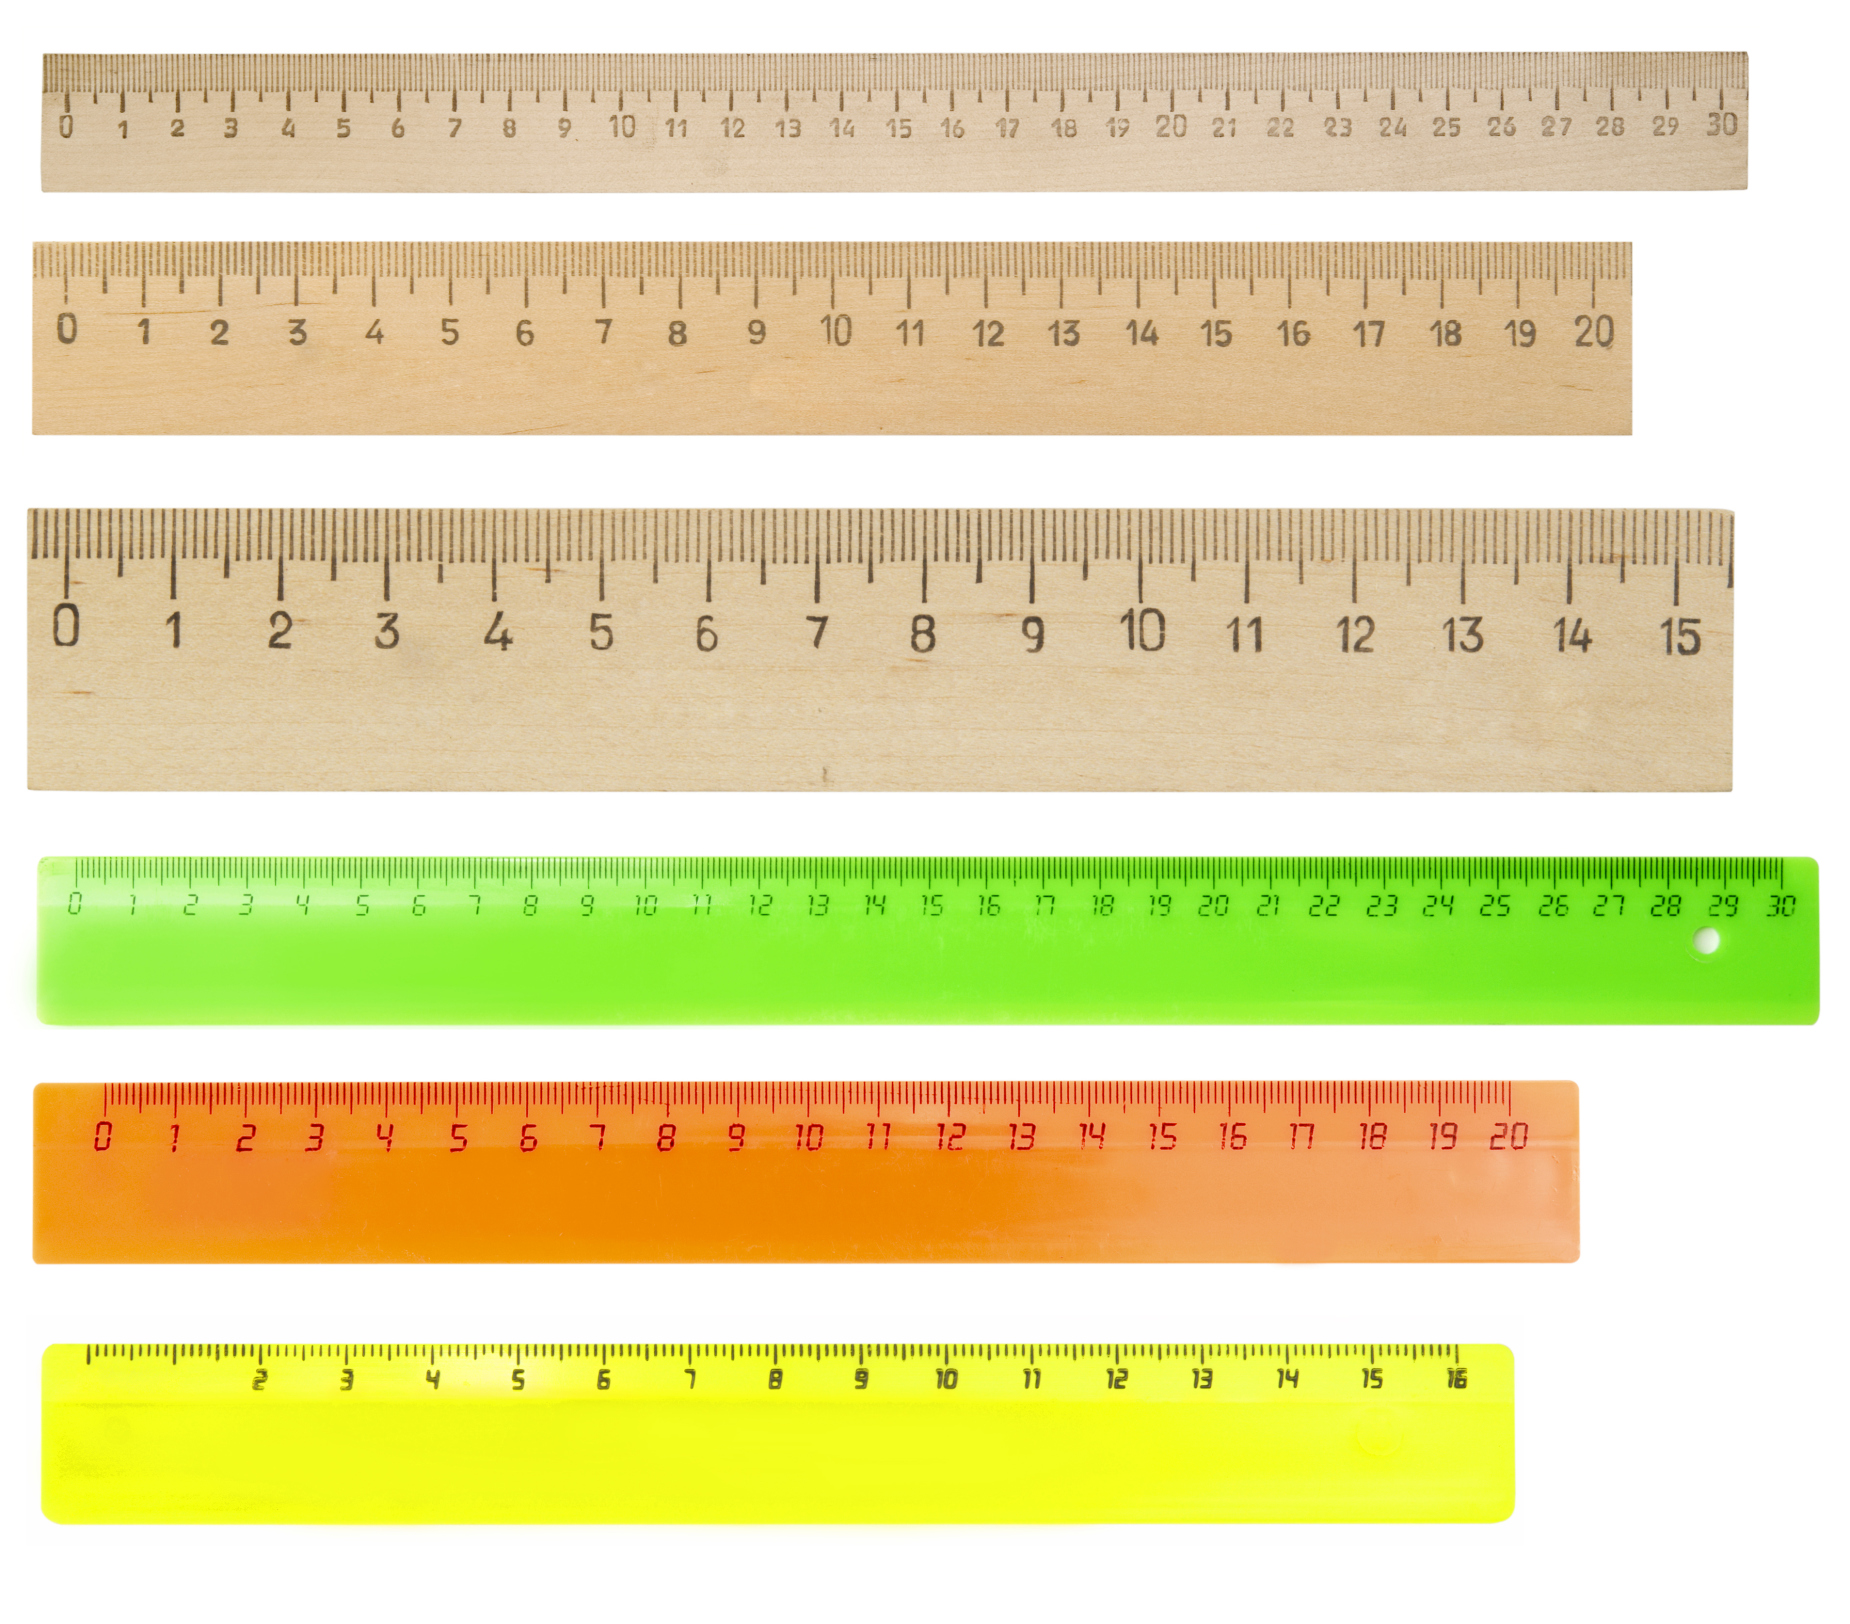 10 In Cm How To Read Centimeter Measurements On A Ruler Sciencing